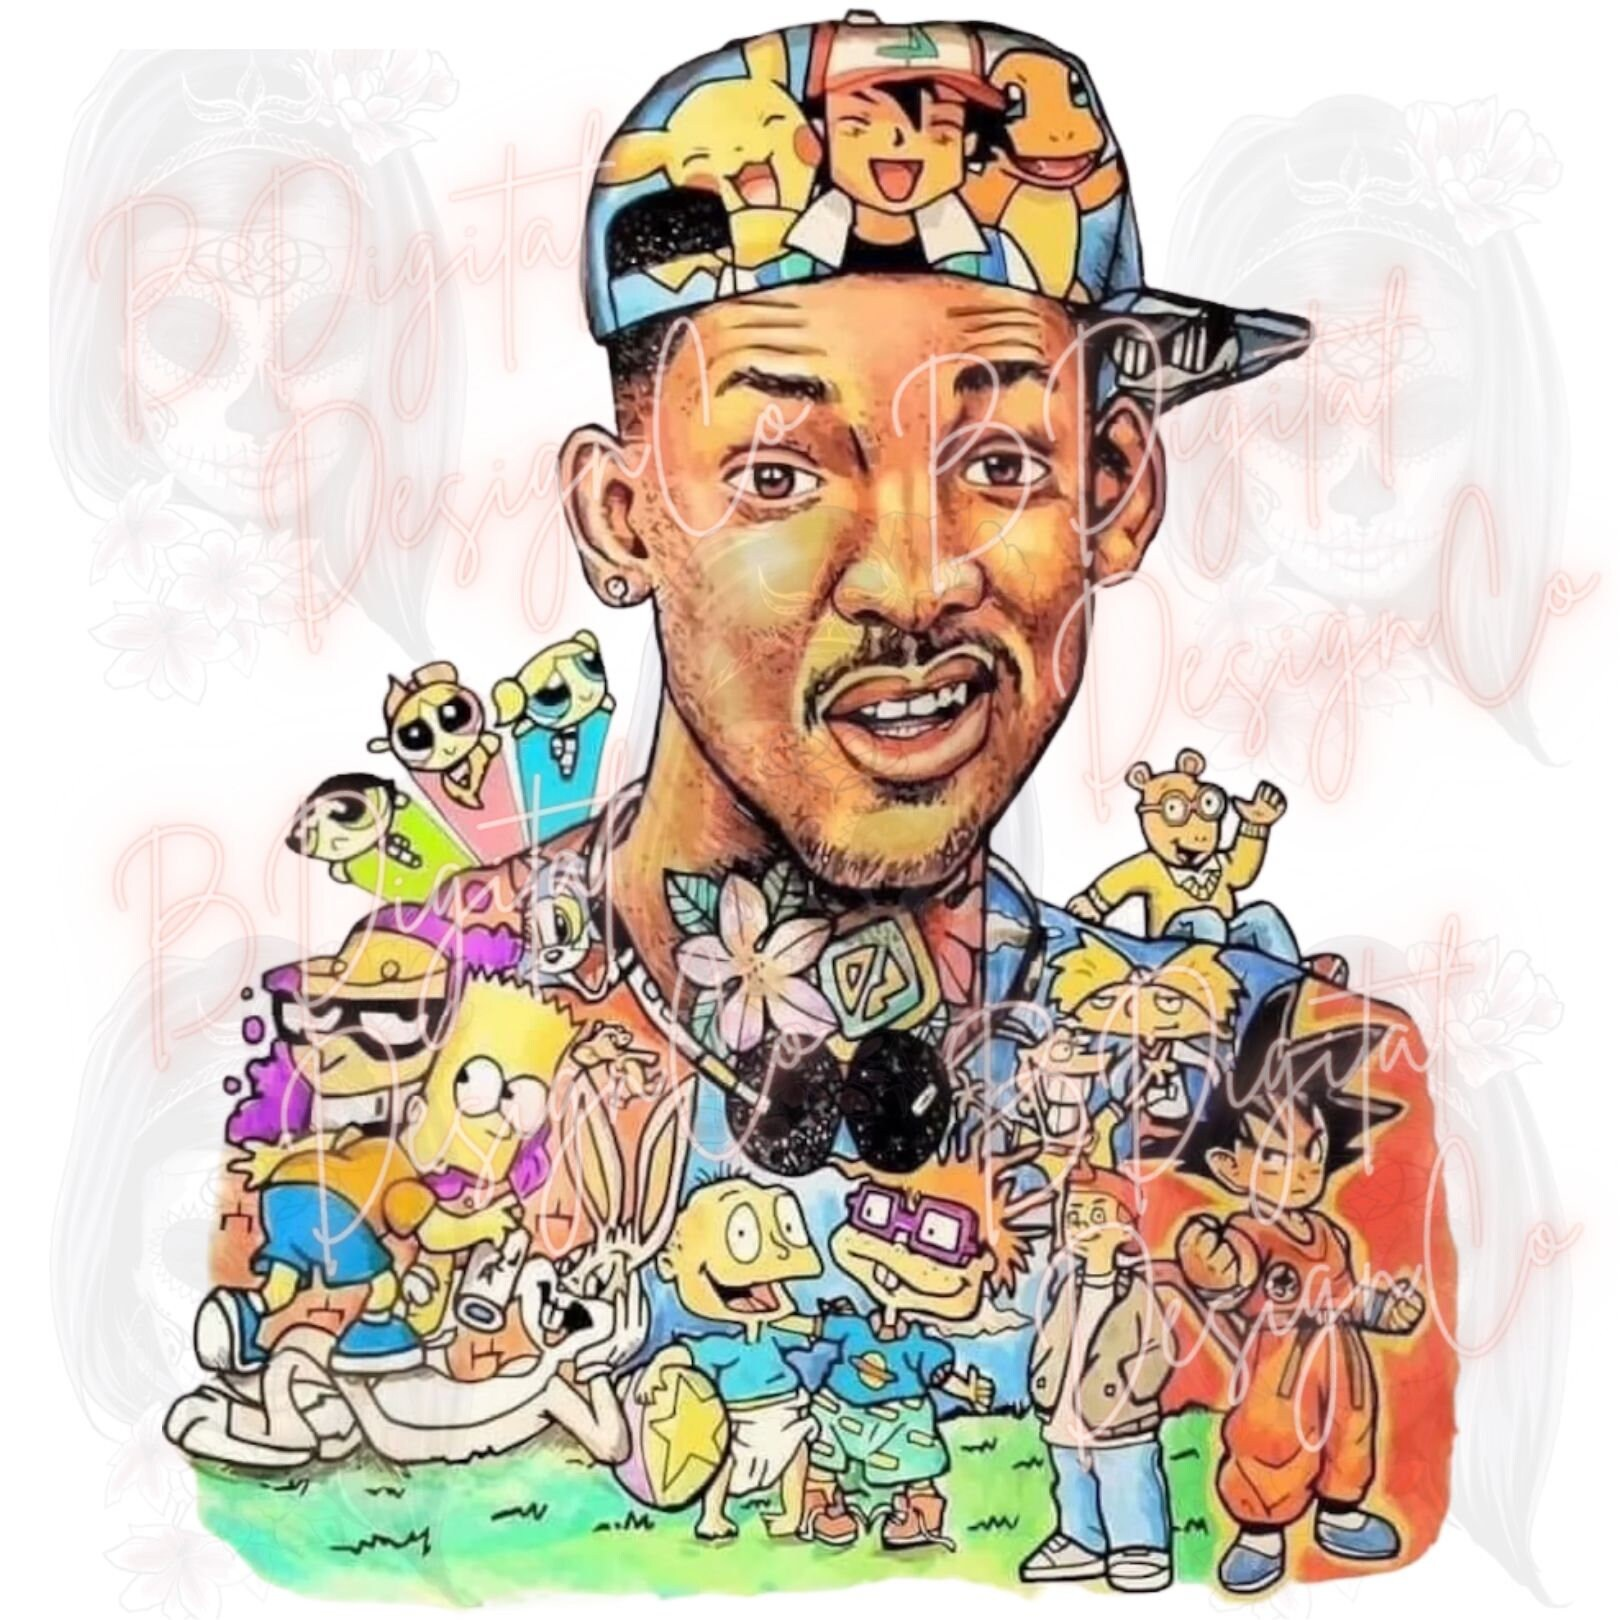 Fresh Prince Poster, 90s Animated Television Series Png Files Instant Download